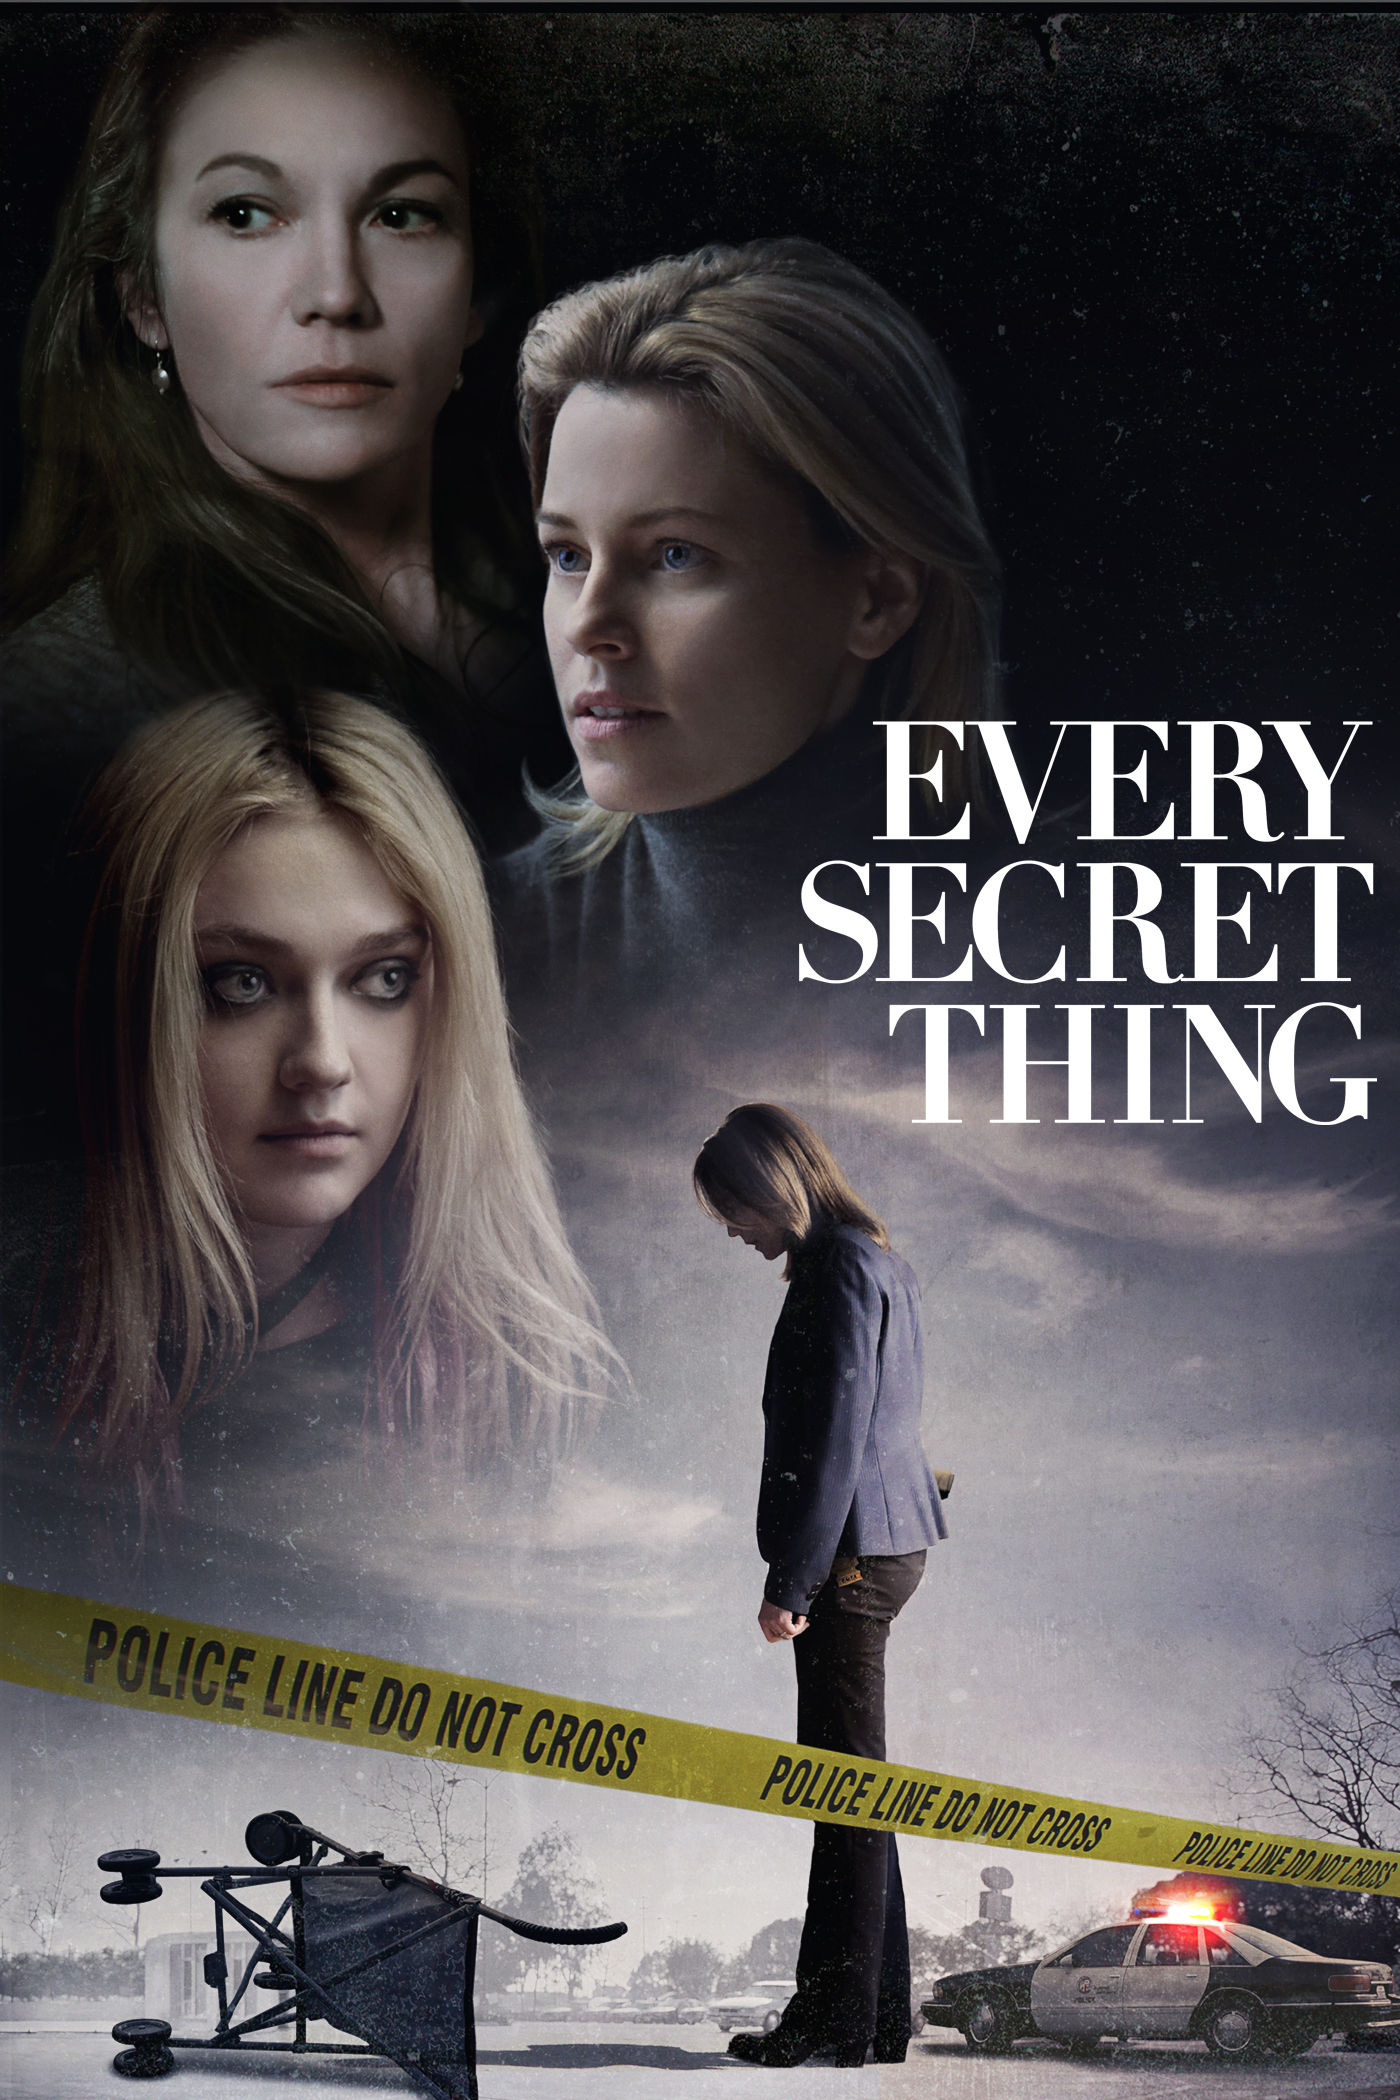 My Son 2006 Full Movie >> Every Secret Thing (2014) - DVD PLANET STORE